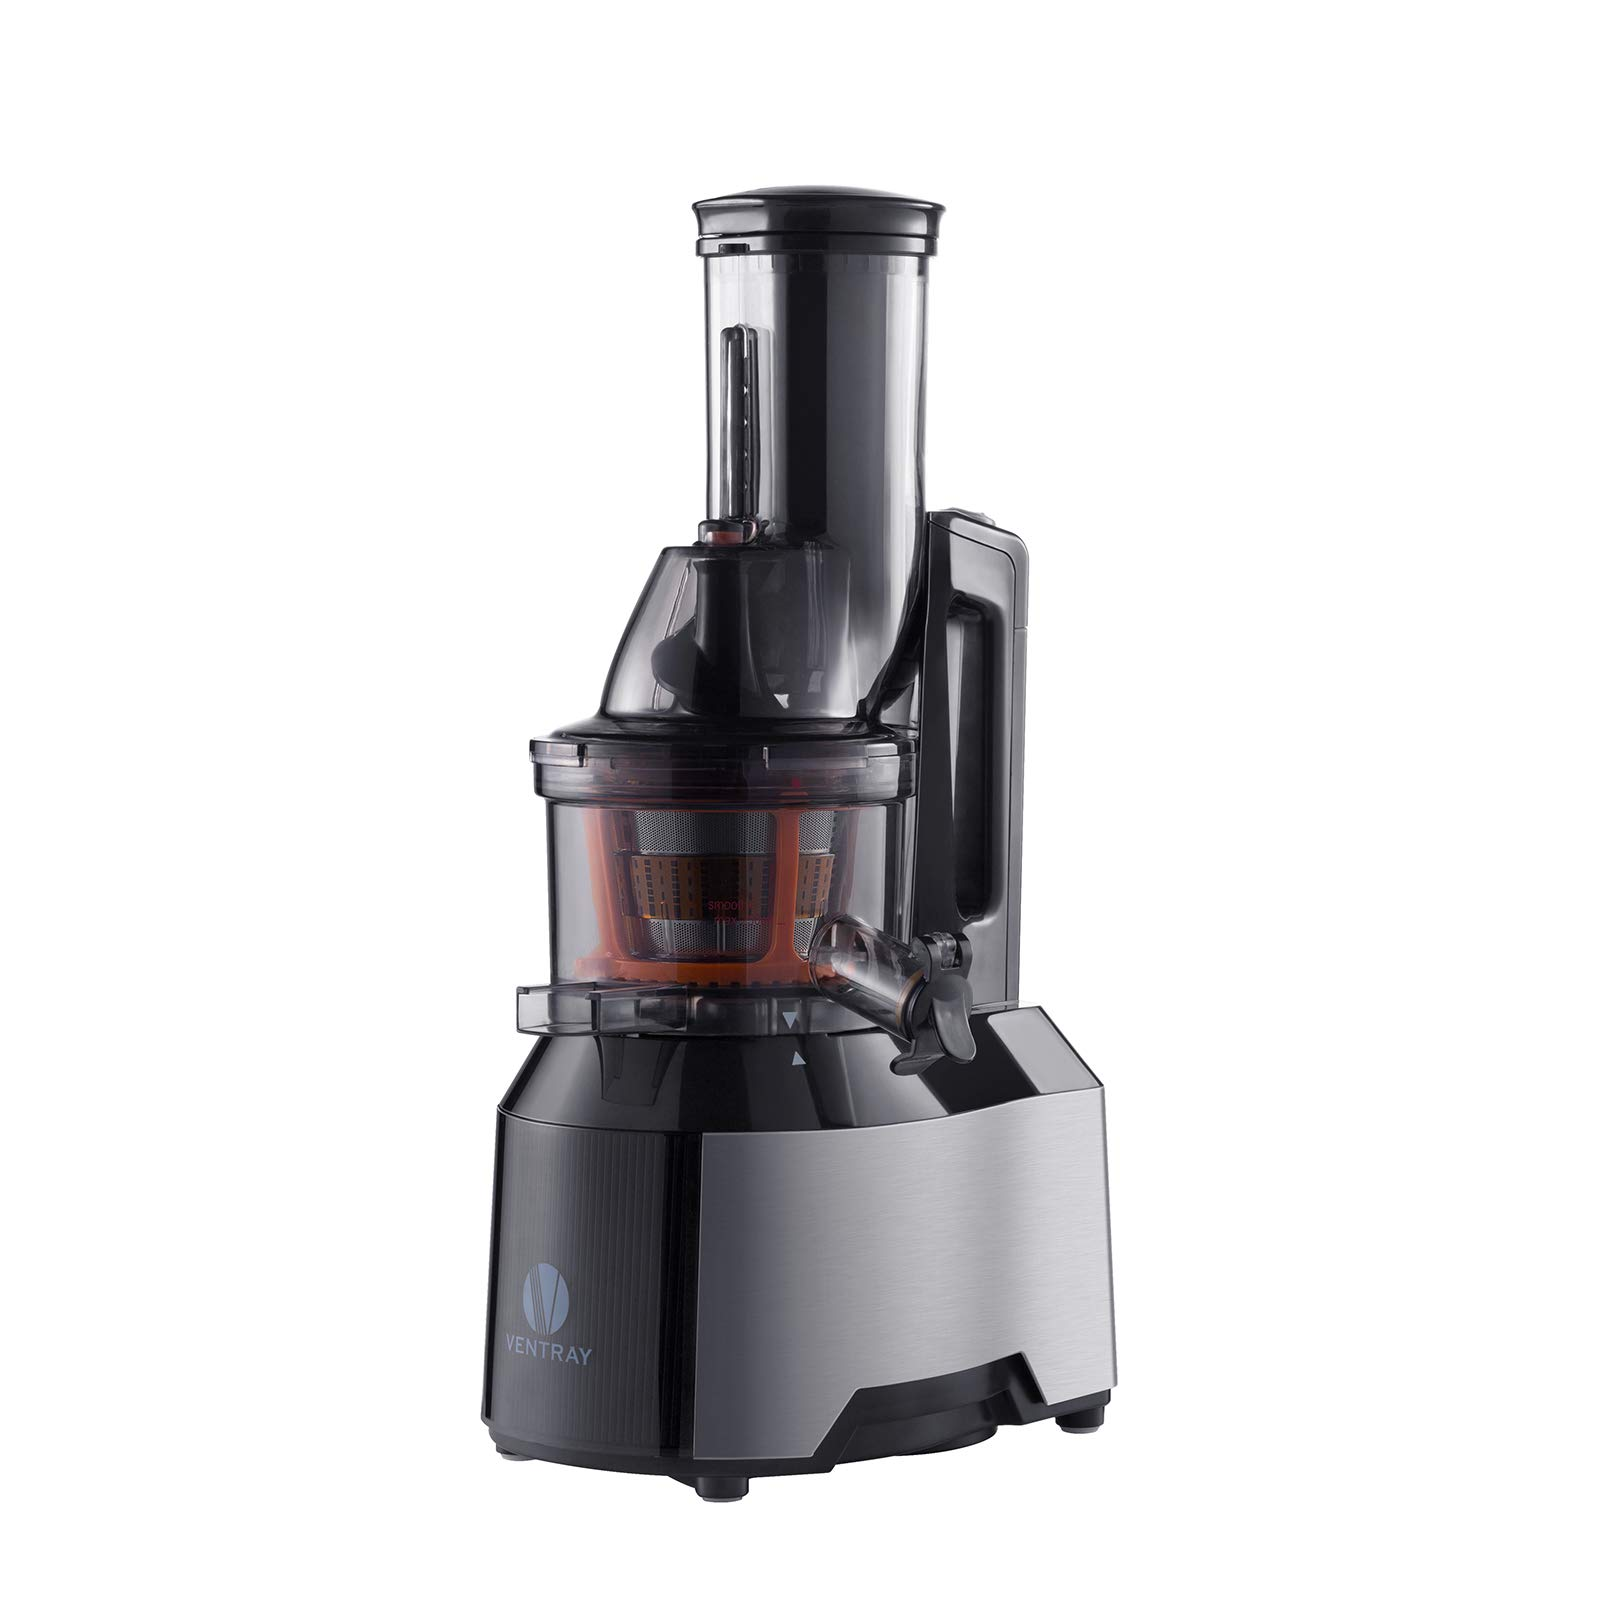 Ventray Masticating Juicer - Slow Juicer with Wide Chute Big Feeding Mouth - Cold Press Juice Maker - Black by Ventray